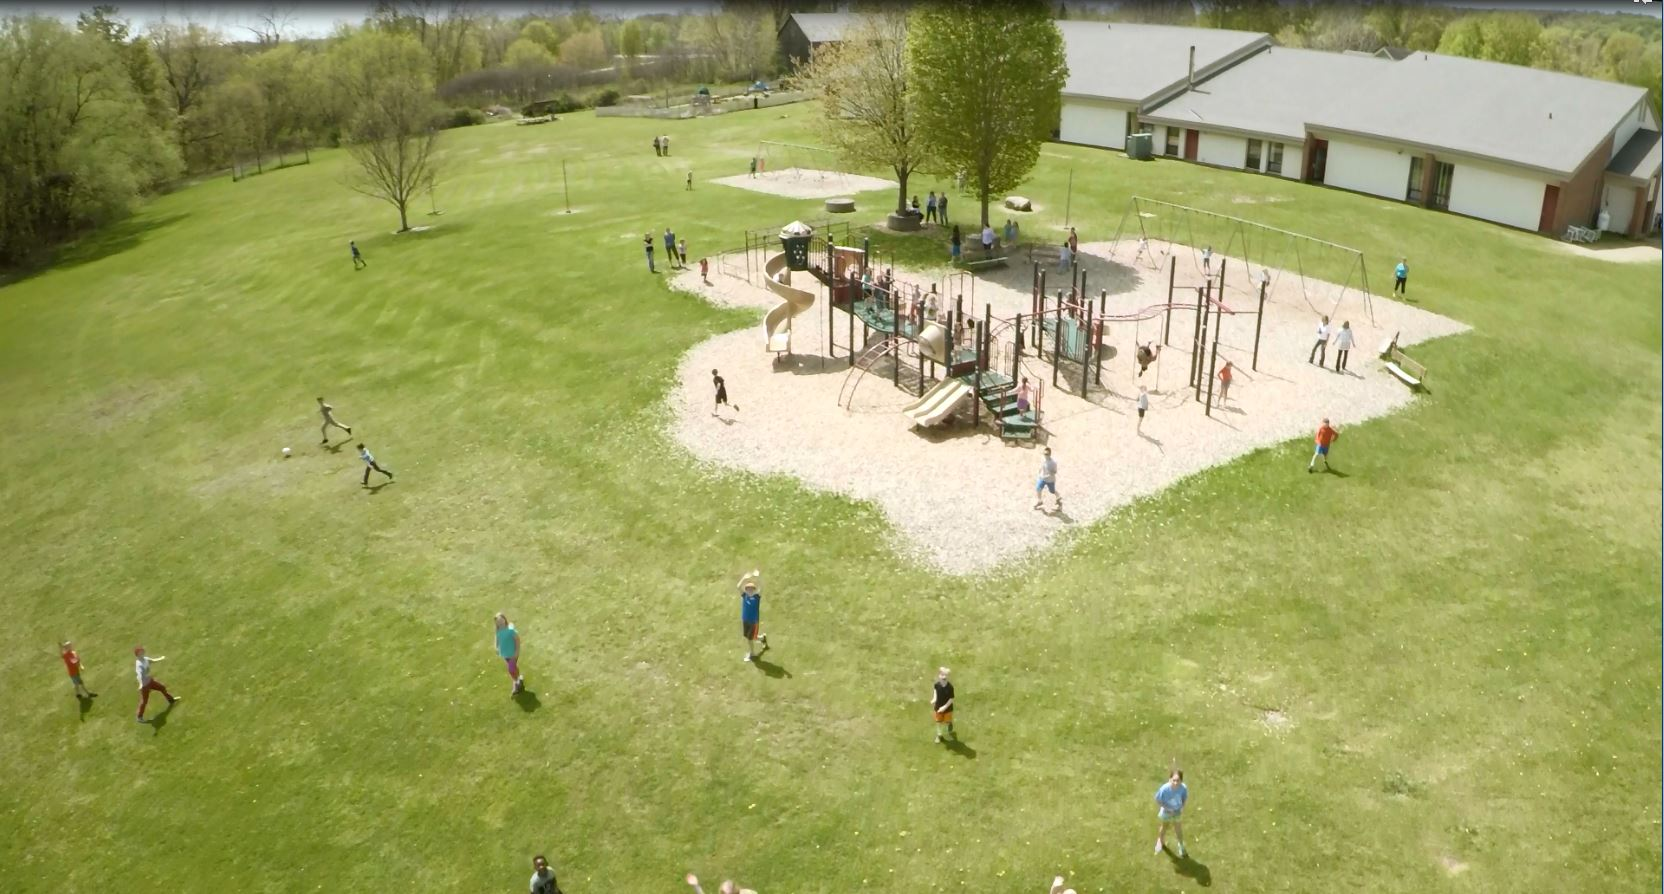 image of students on the playground